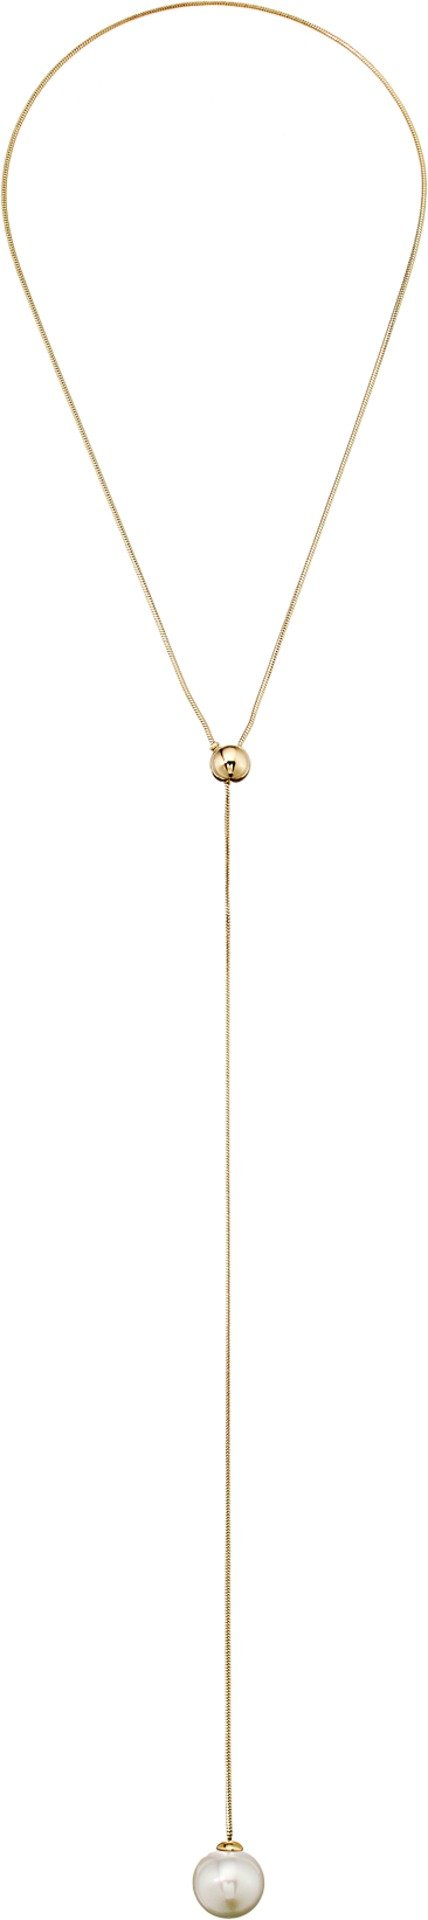 Majorica 16mm White Round Pearl On A Gold Plated Steel Y-Shaped Necklace, 27''